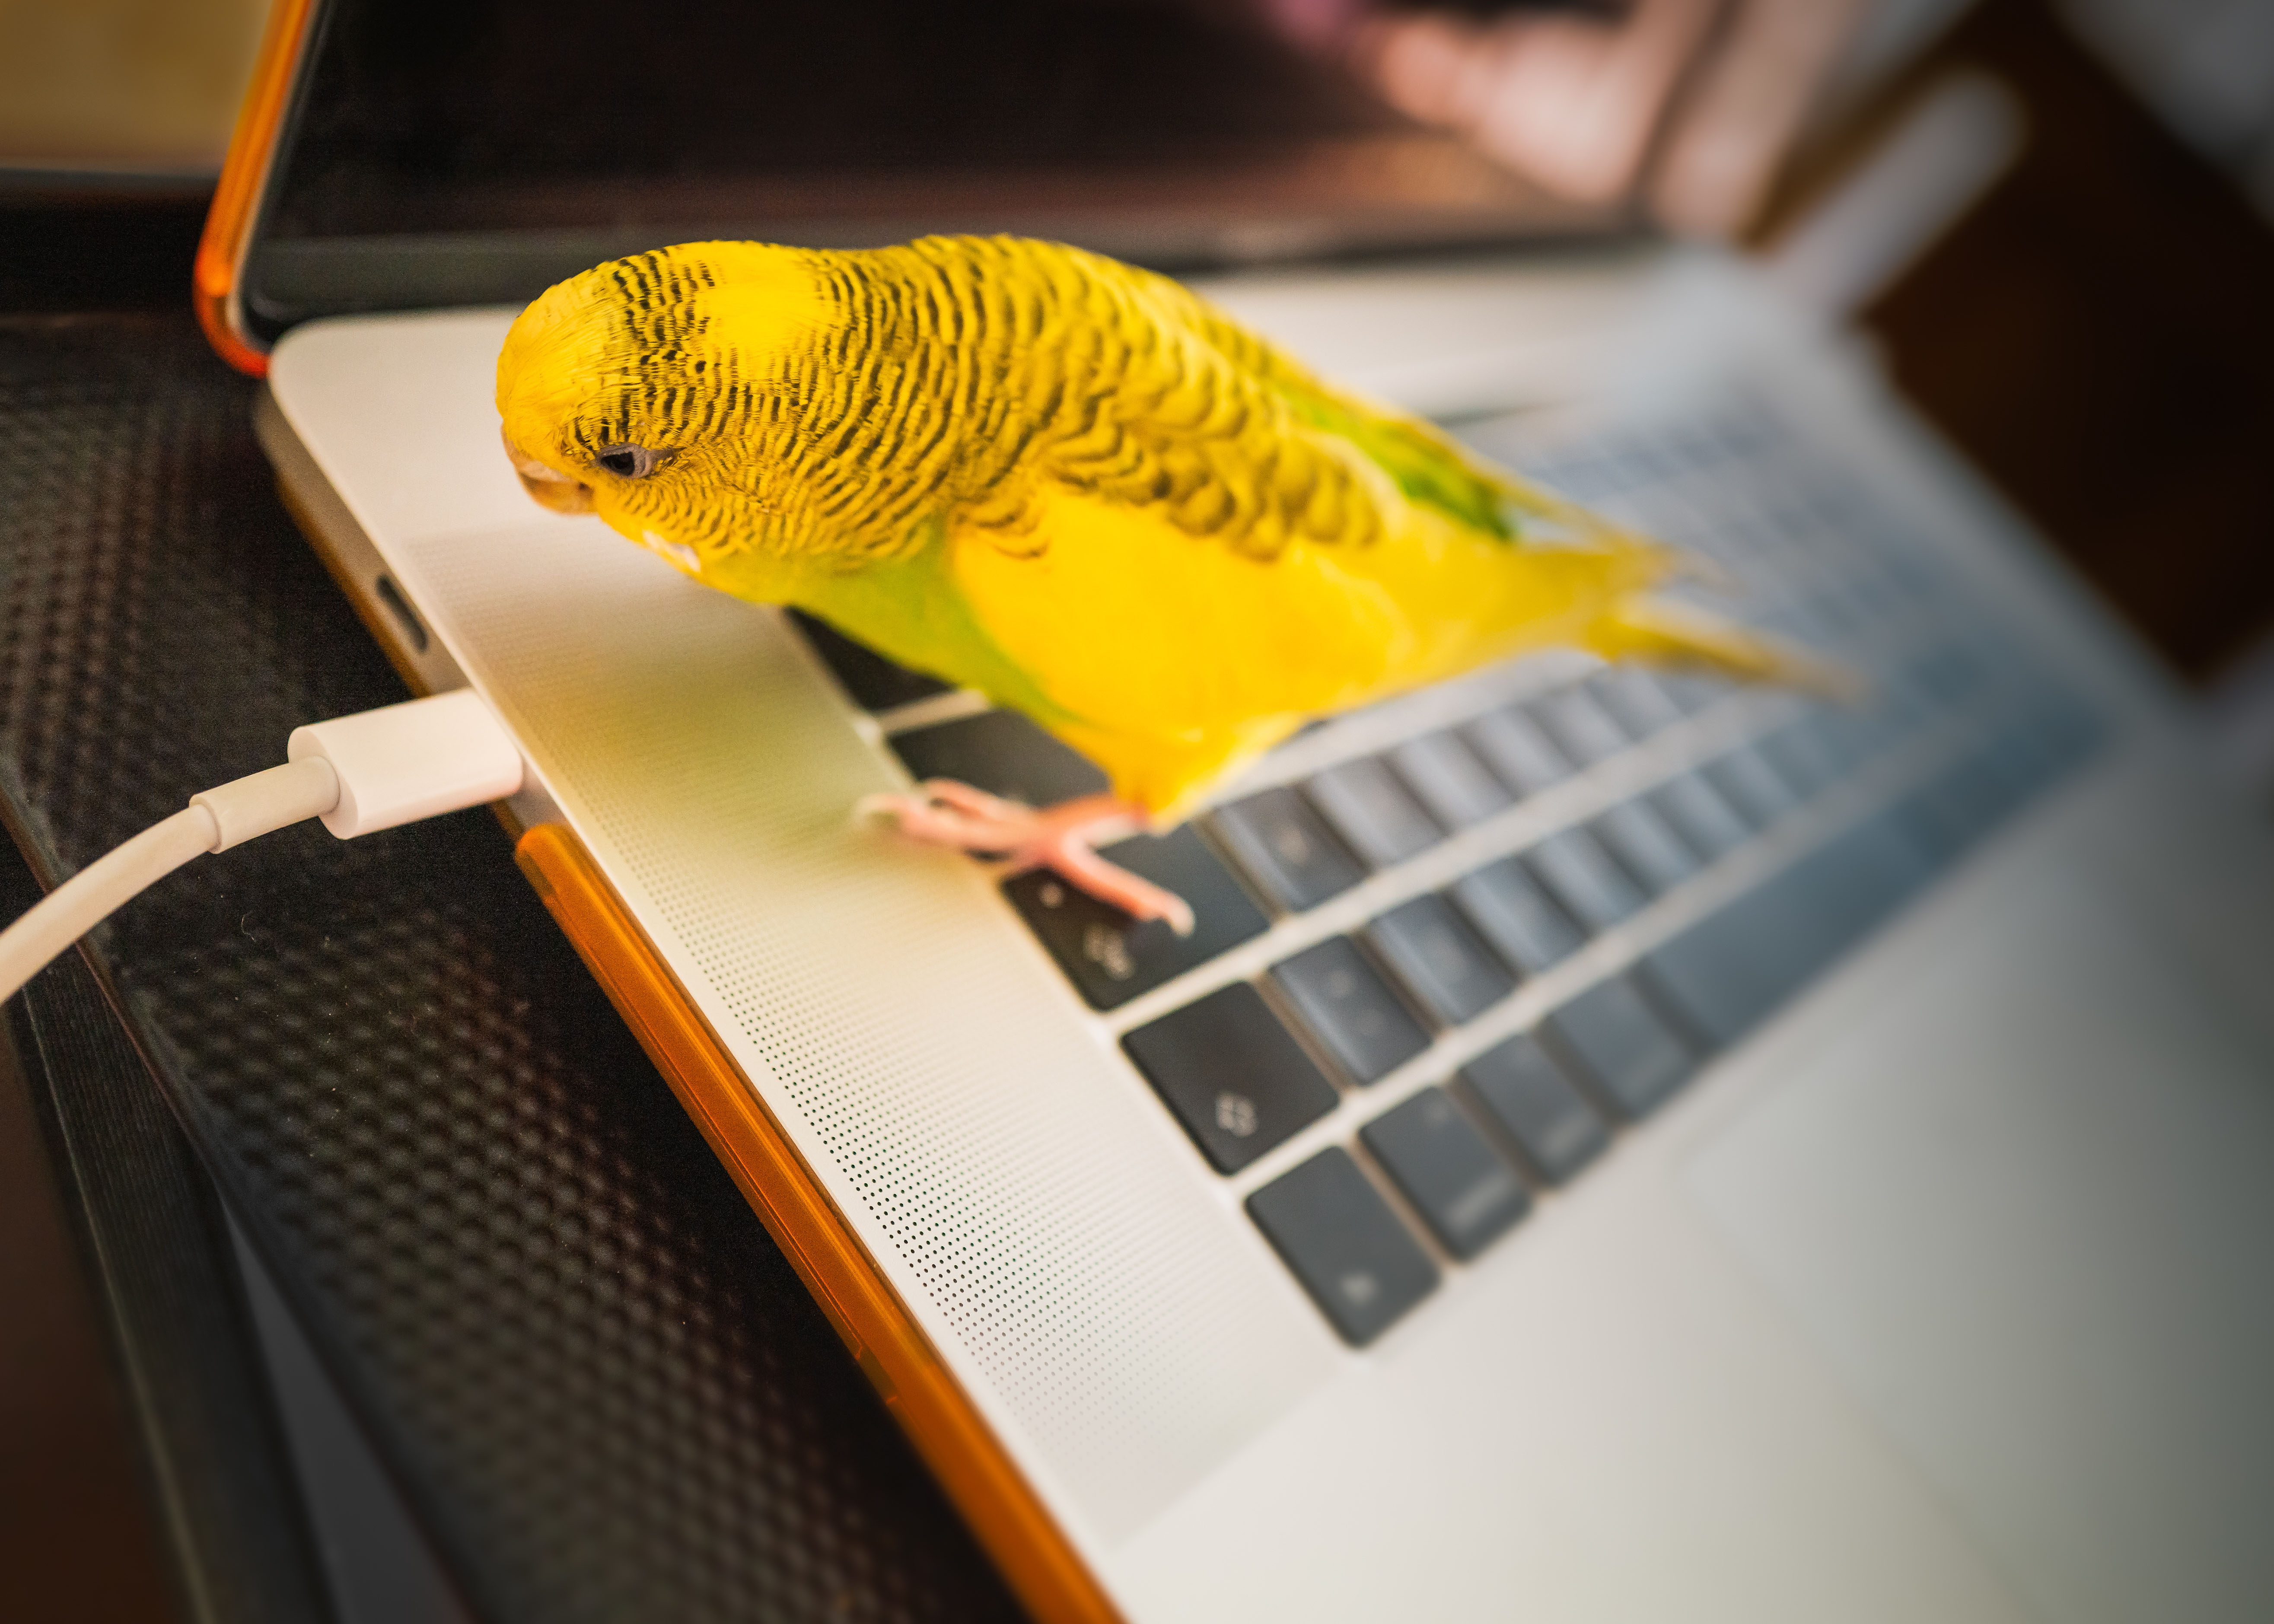 A photo of a bright yellow budgie standing on the keyboard of a smart-looking laptop, staring at the cable